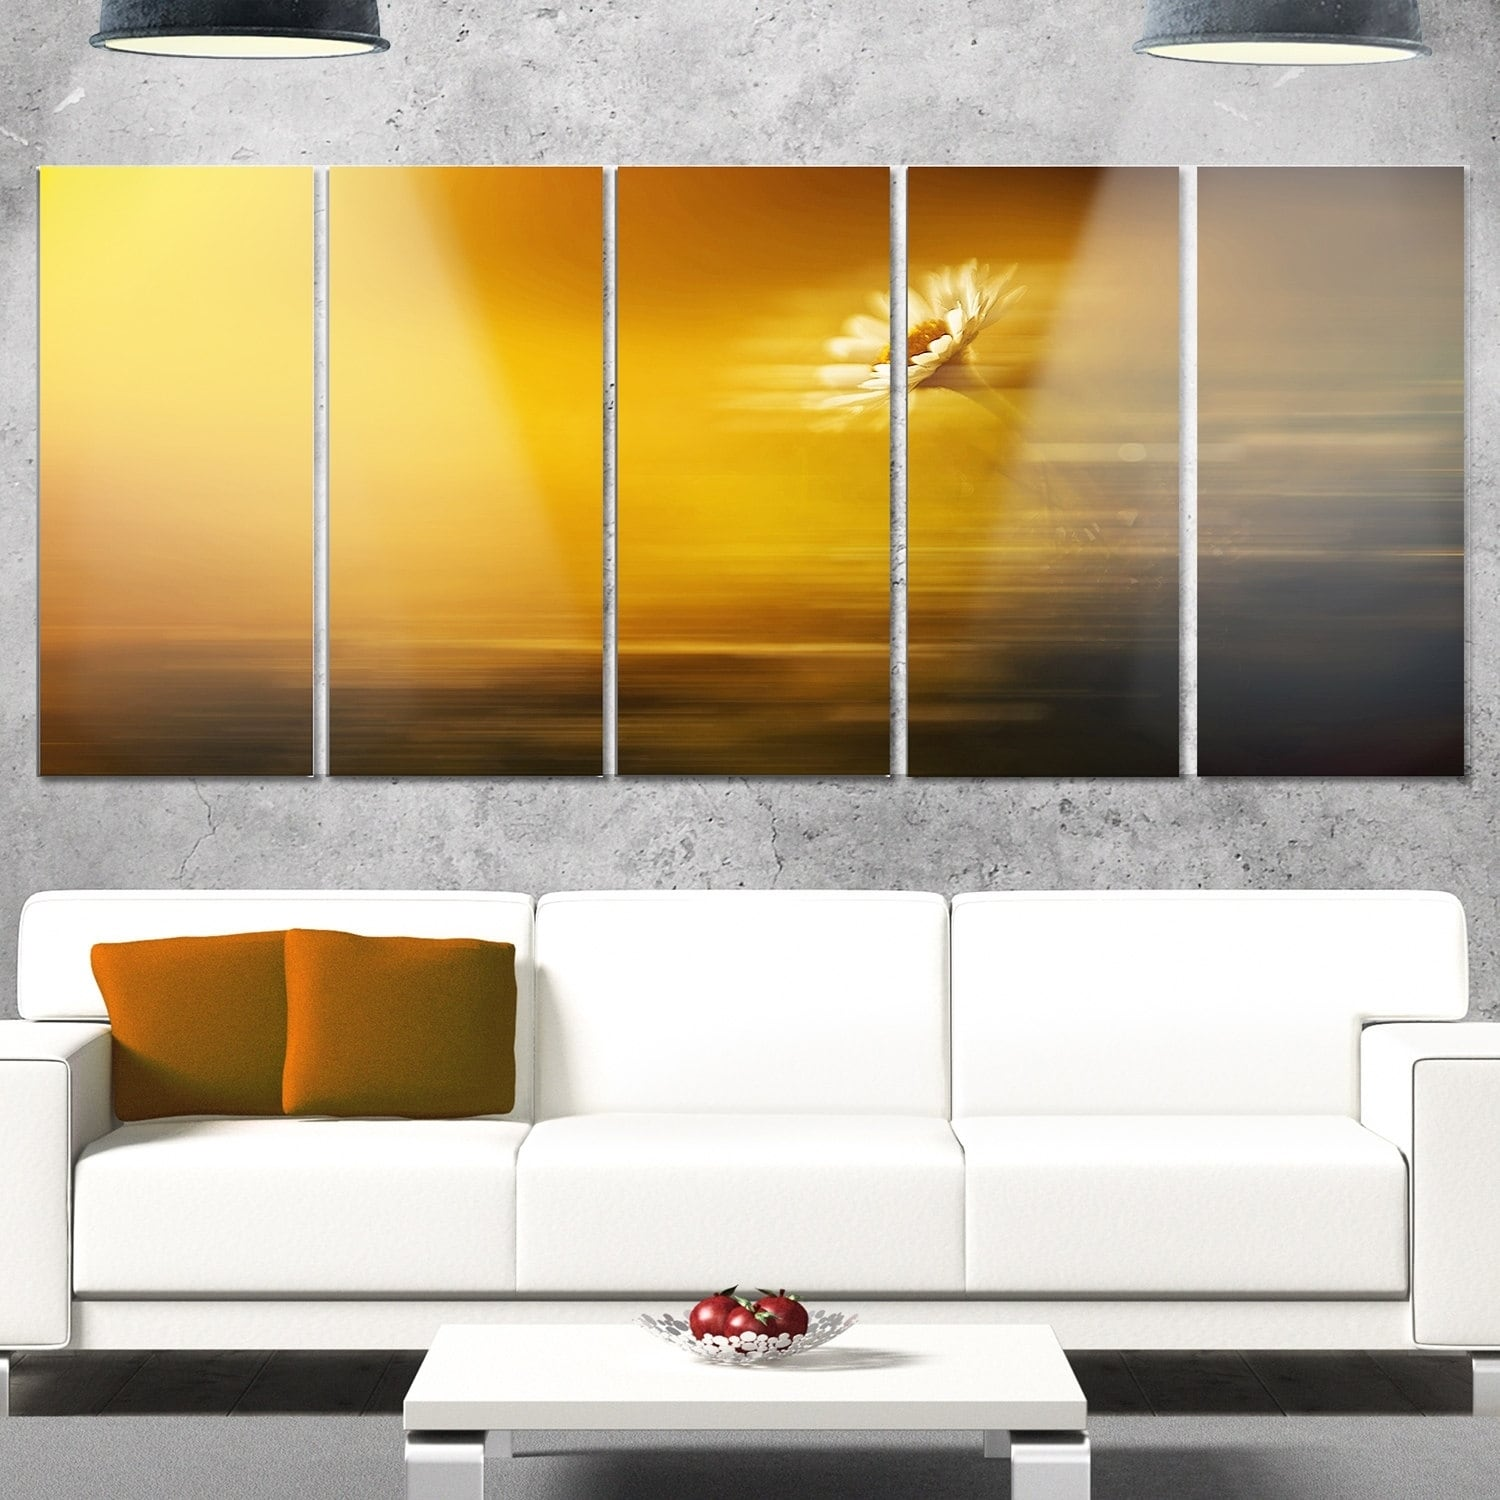 Old Fashioned Gemstone Wall Art Ideas - The Wall Art Decorations ...